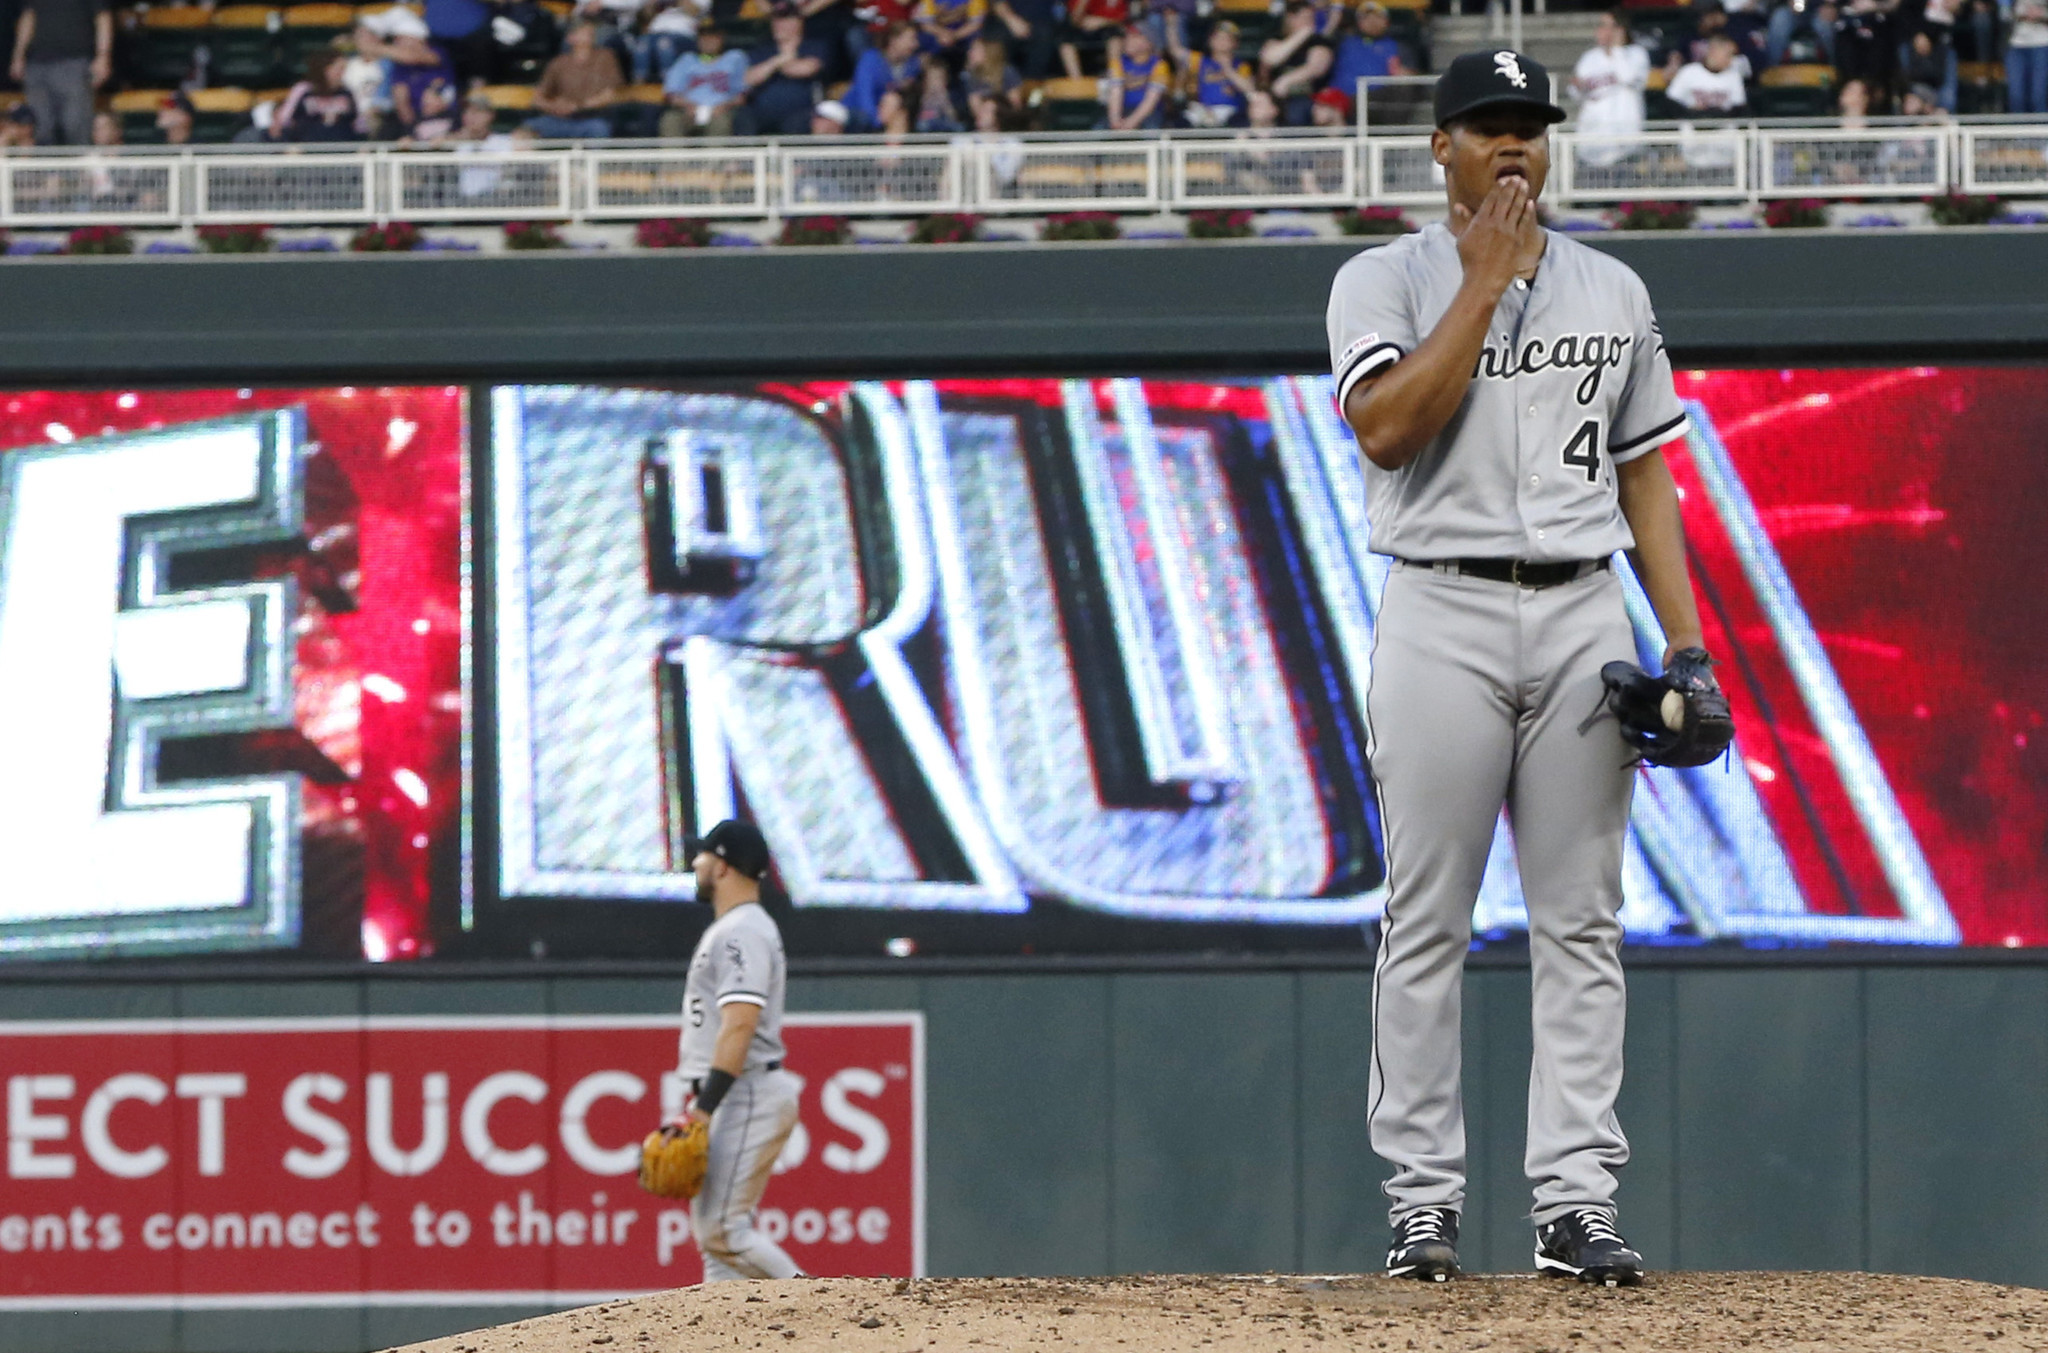 Reynaldo Lopez allows 8 runs in the White Sox's 11-4 loss to the Twins